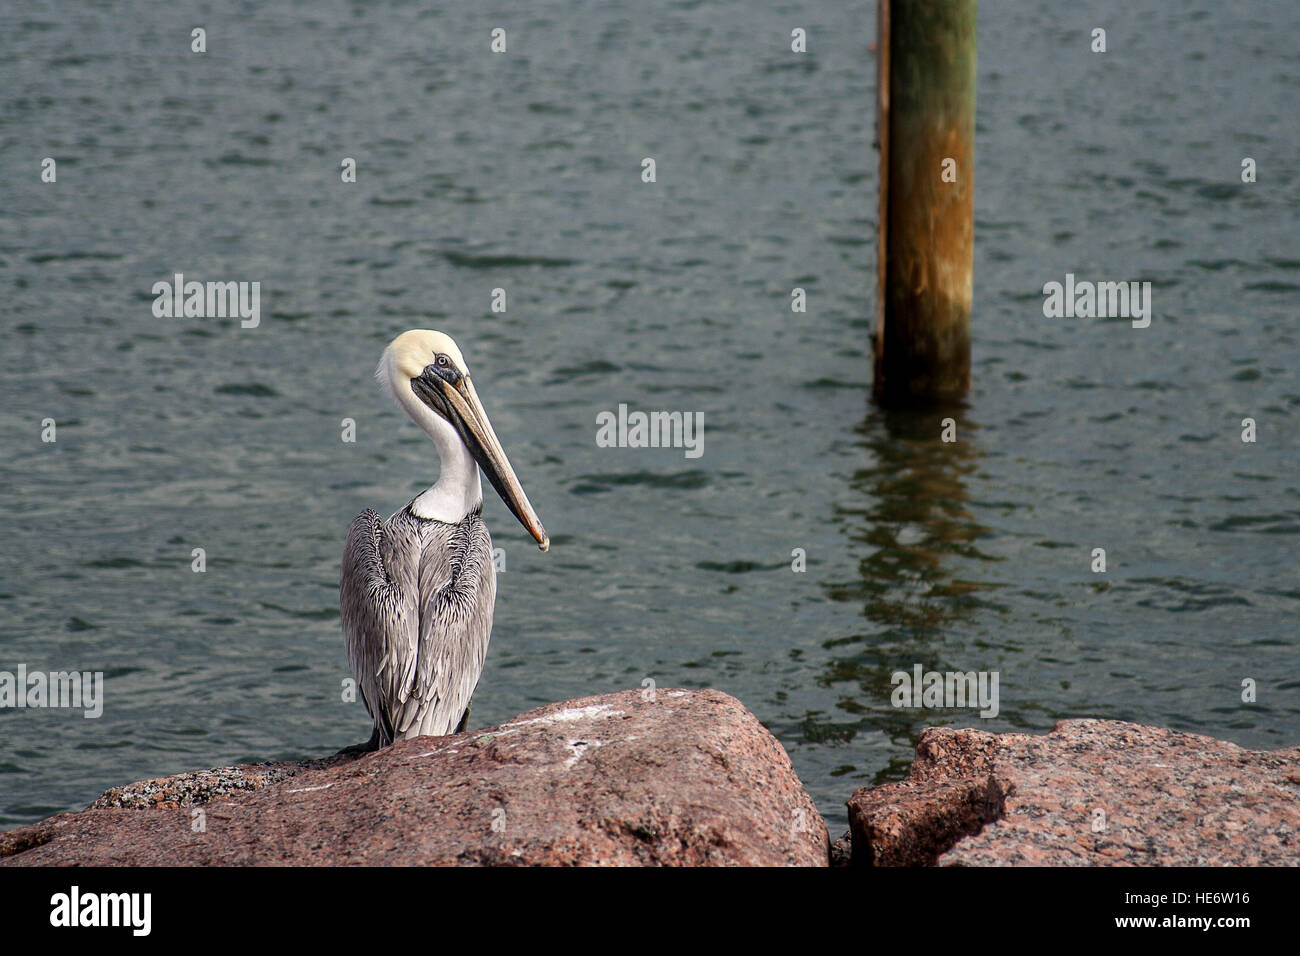 A Pelican sits on the rocks by the water - Stock Image